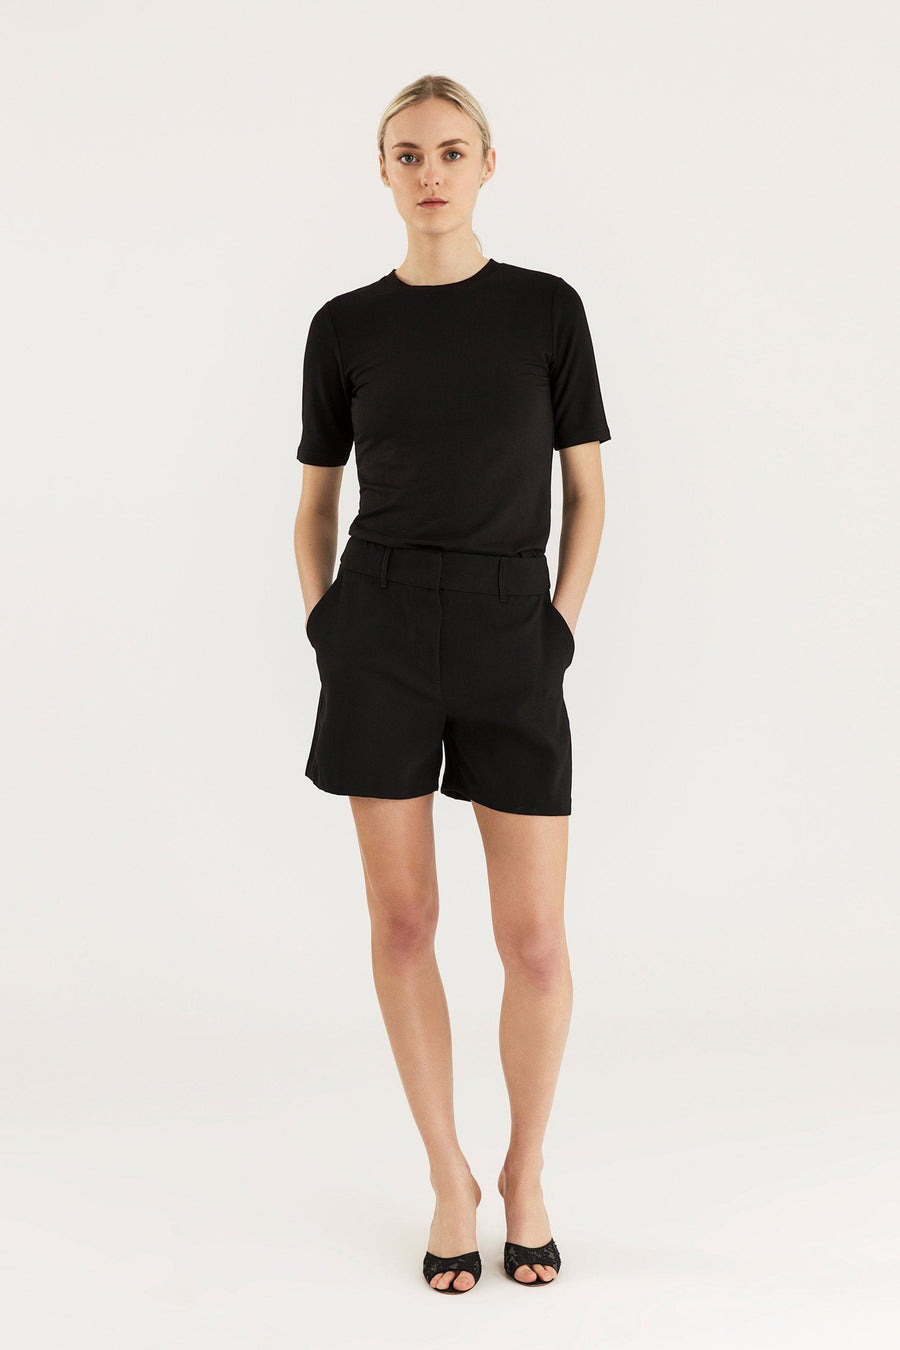 BOCA SHORTS - BLACK Trousers Stylein